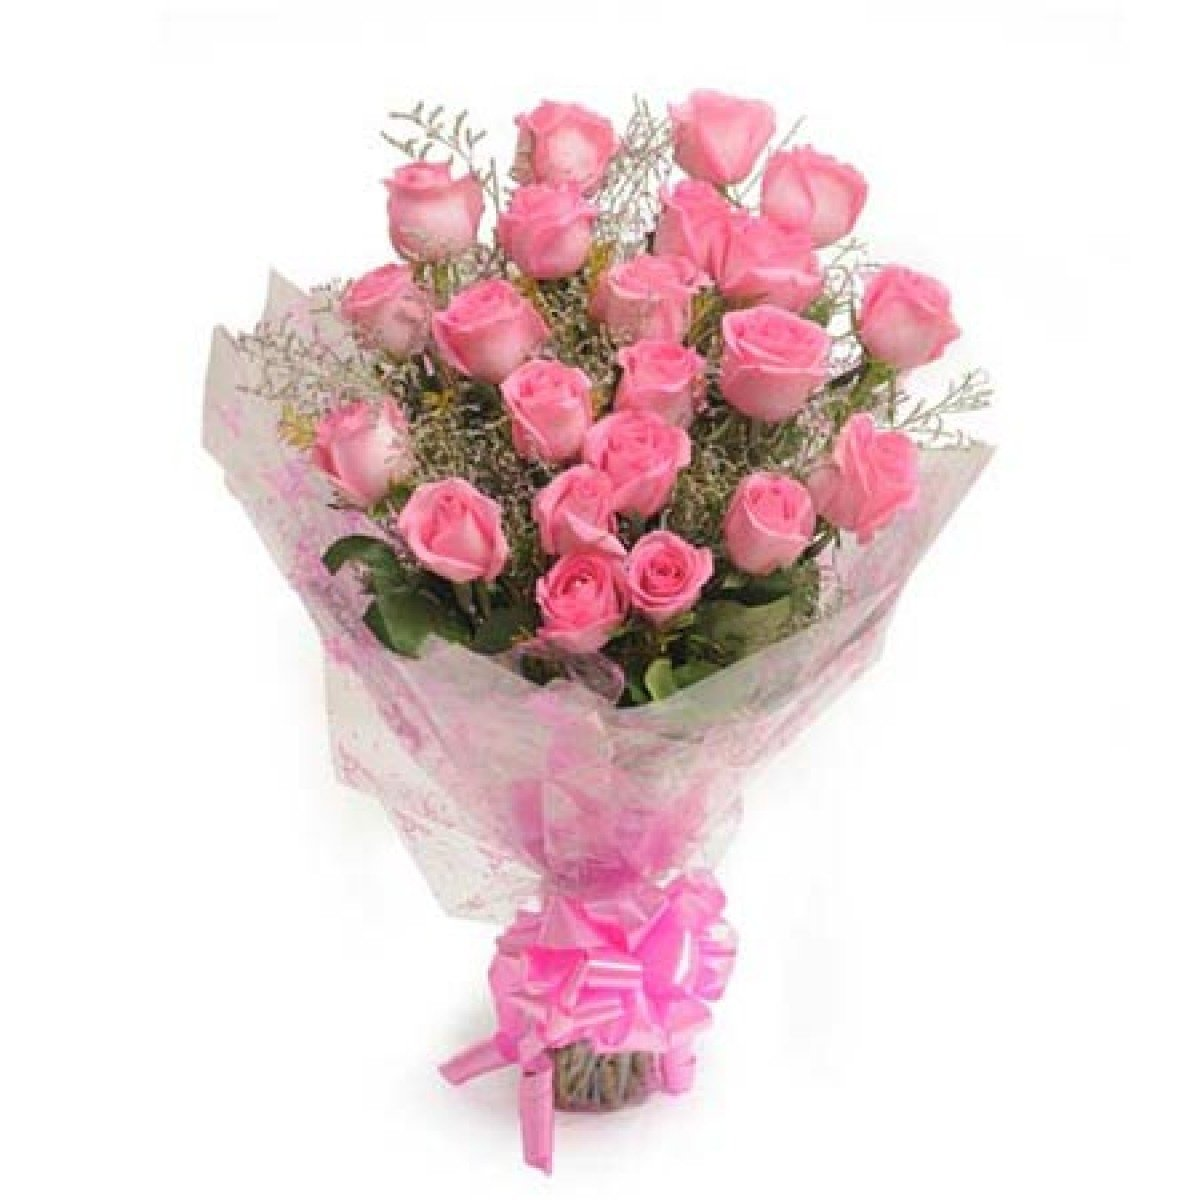 Floralbay Pink Roses Bouquet Fresh Flowers In Cellophane Wrapping